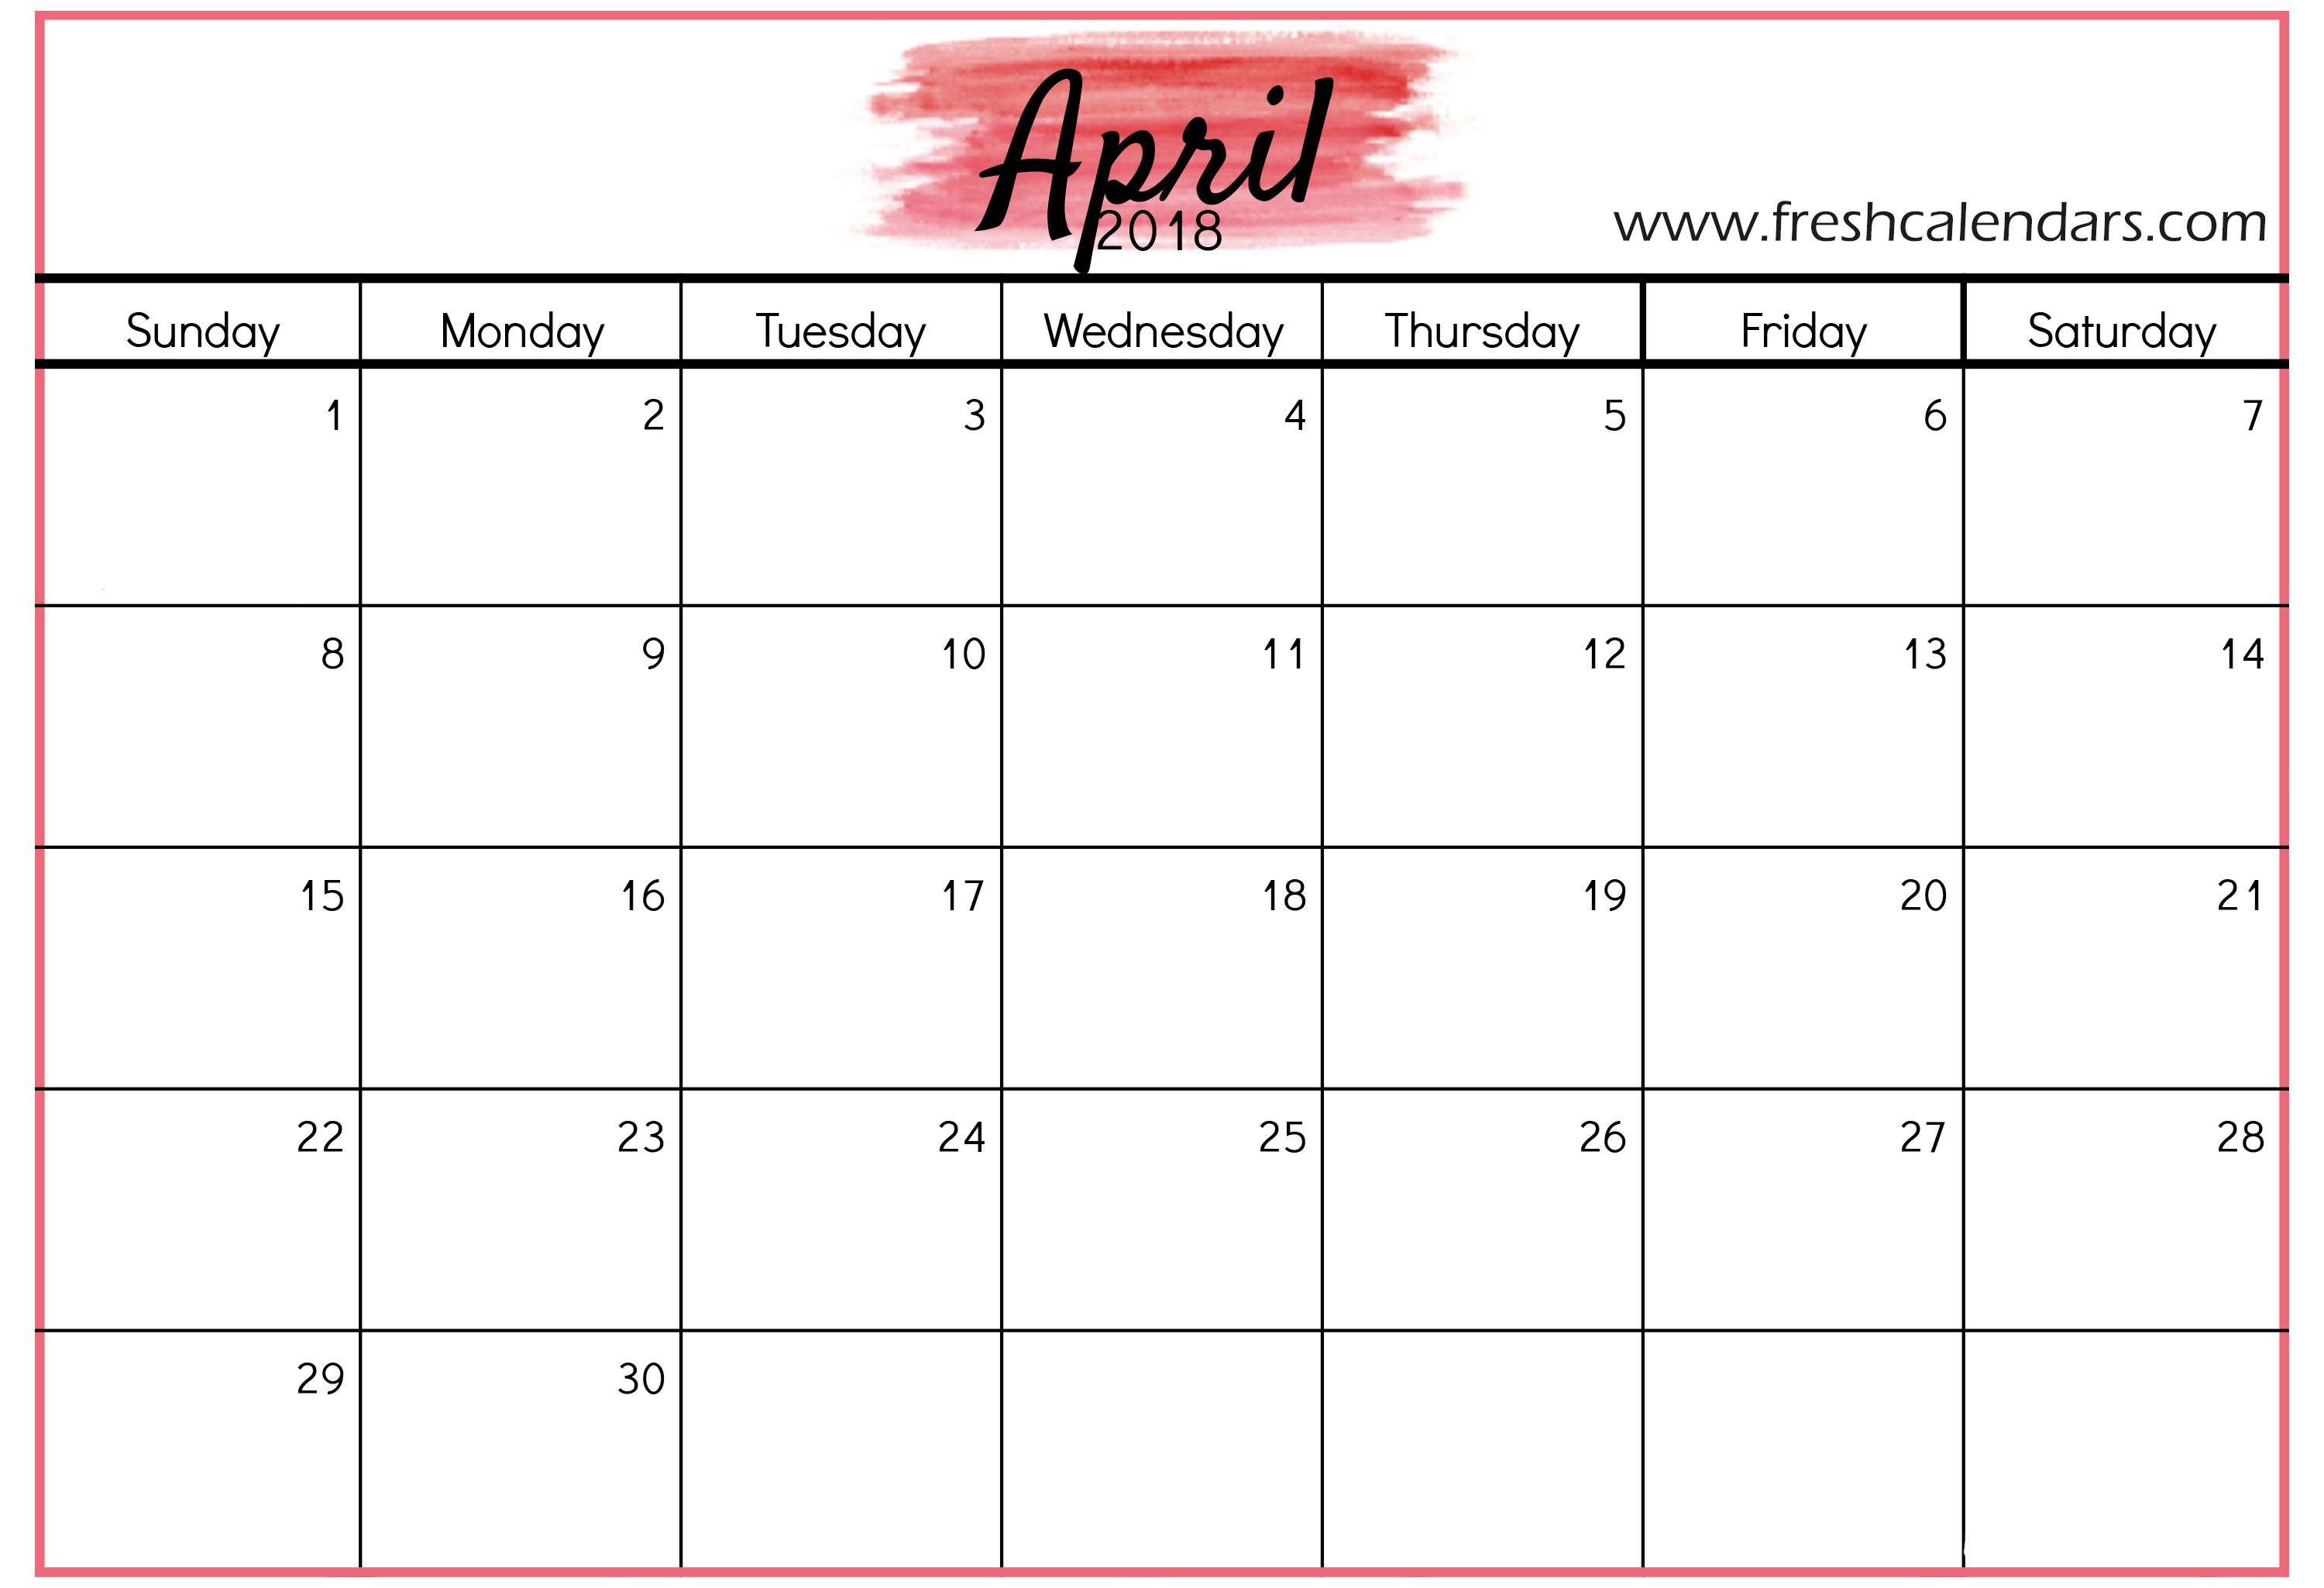 Calendar Month Of April : April calendar printable template with holidays pdf